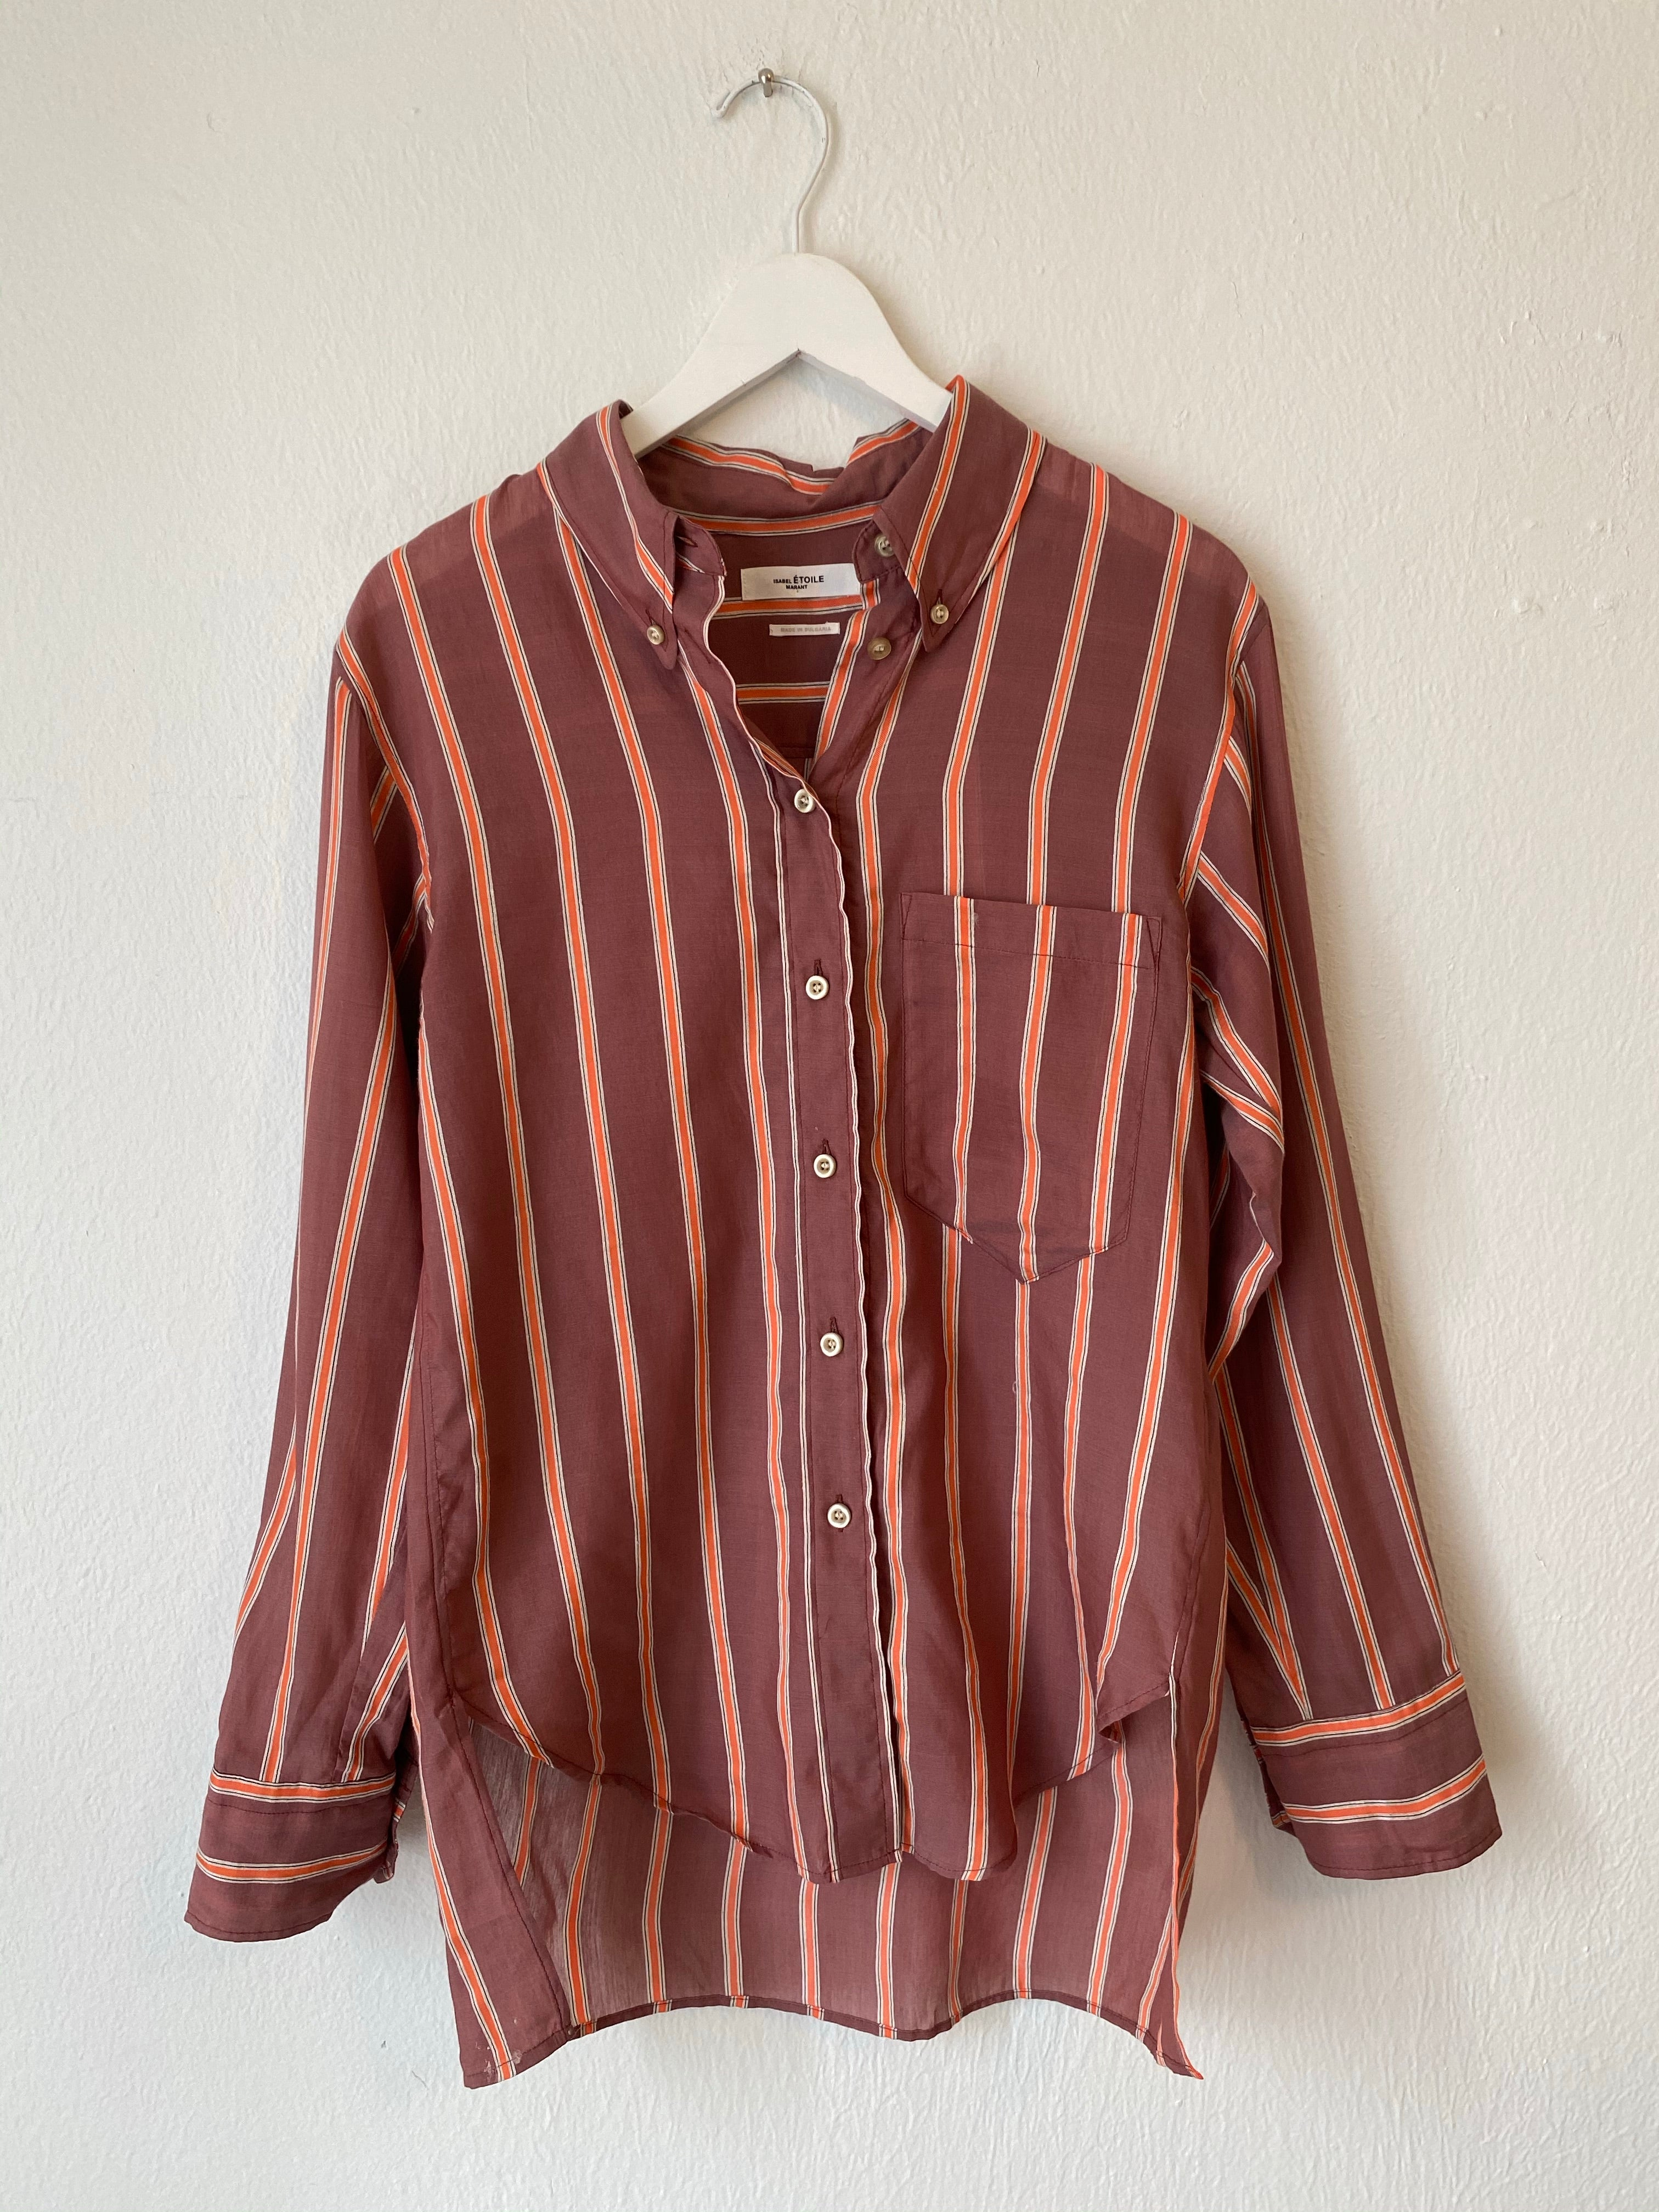 Isabel Marant Stripe Button Up